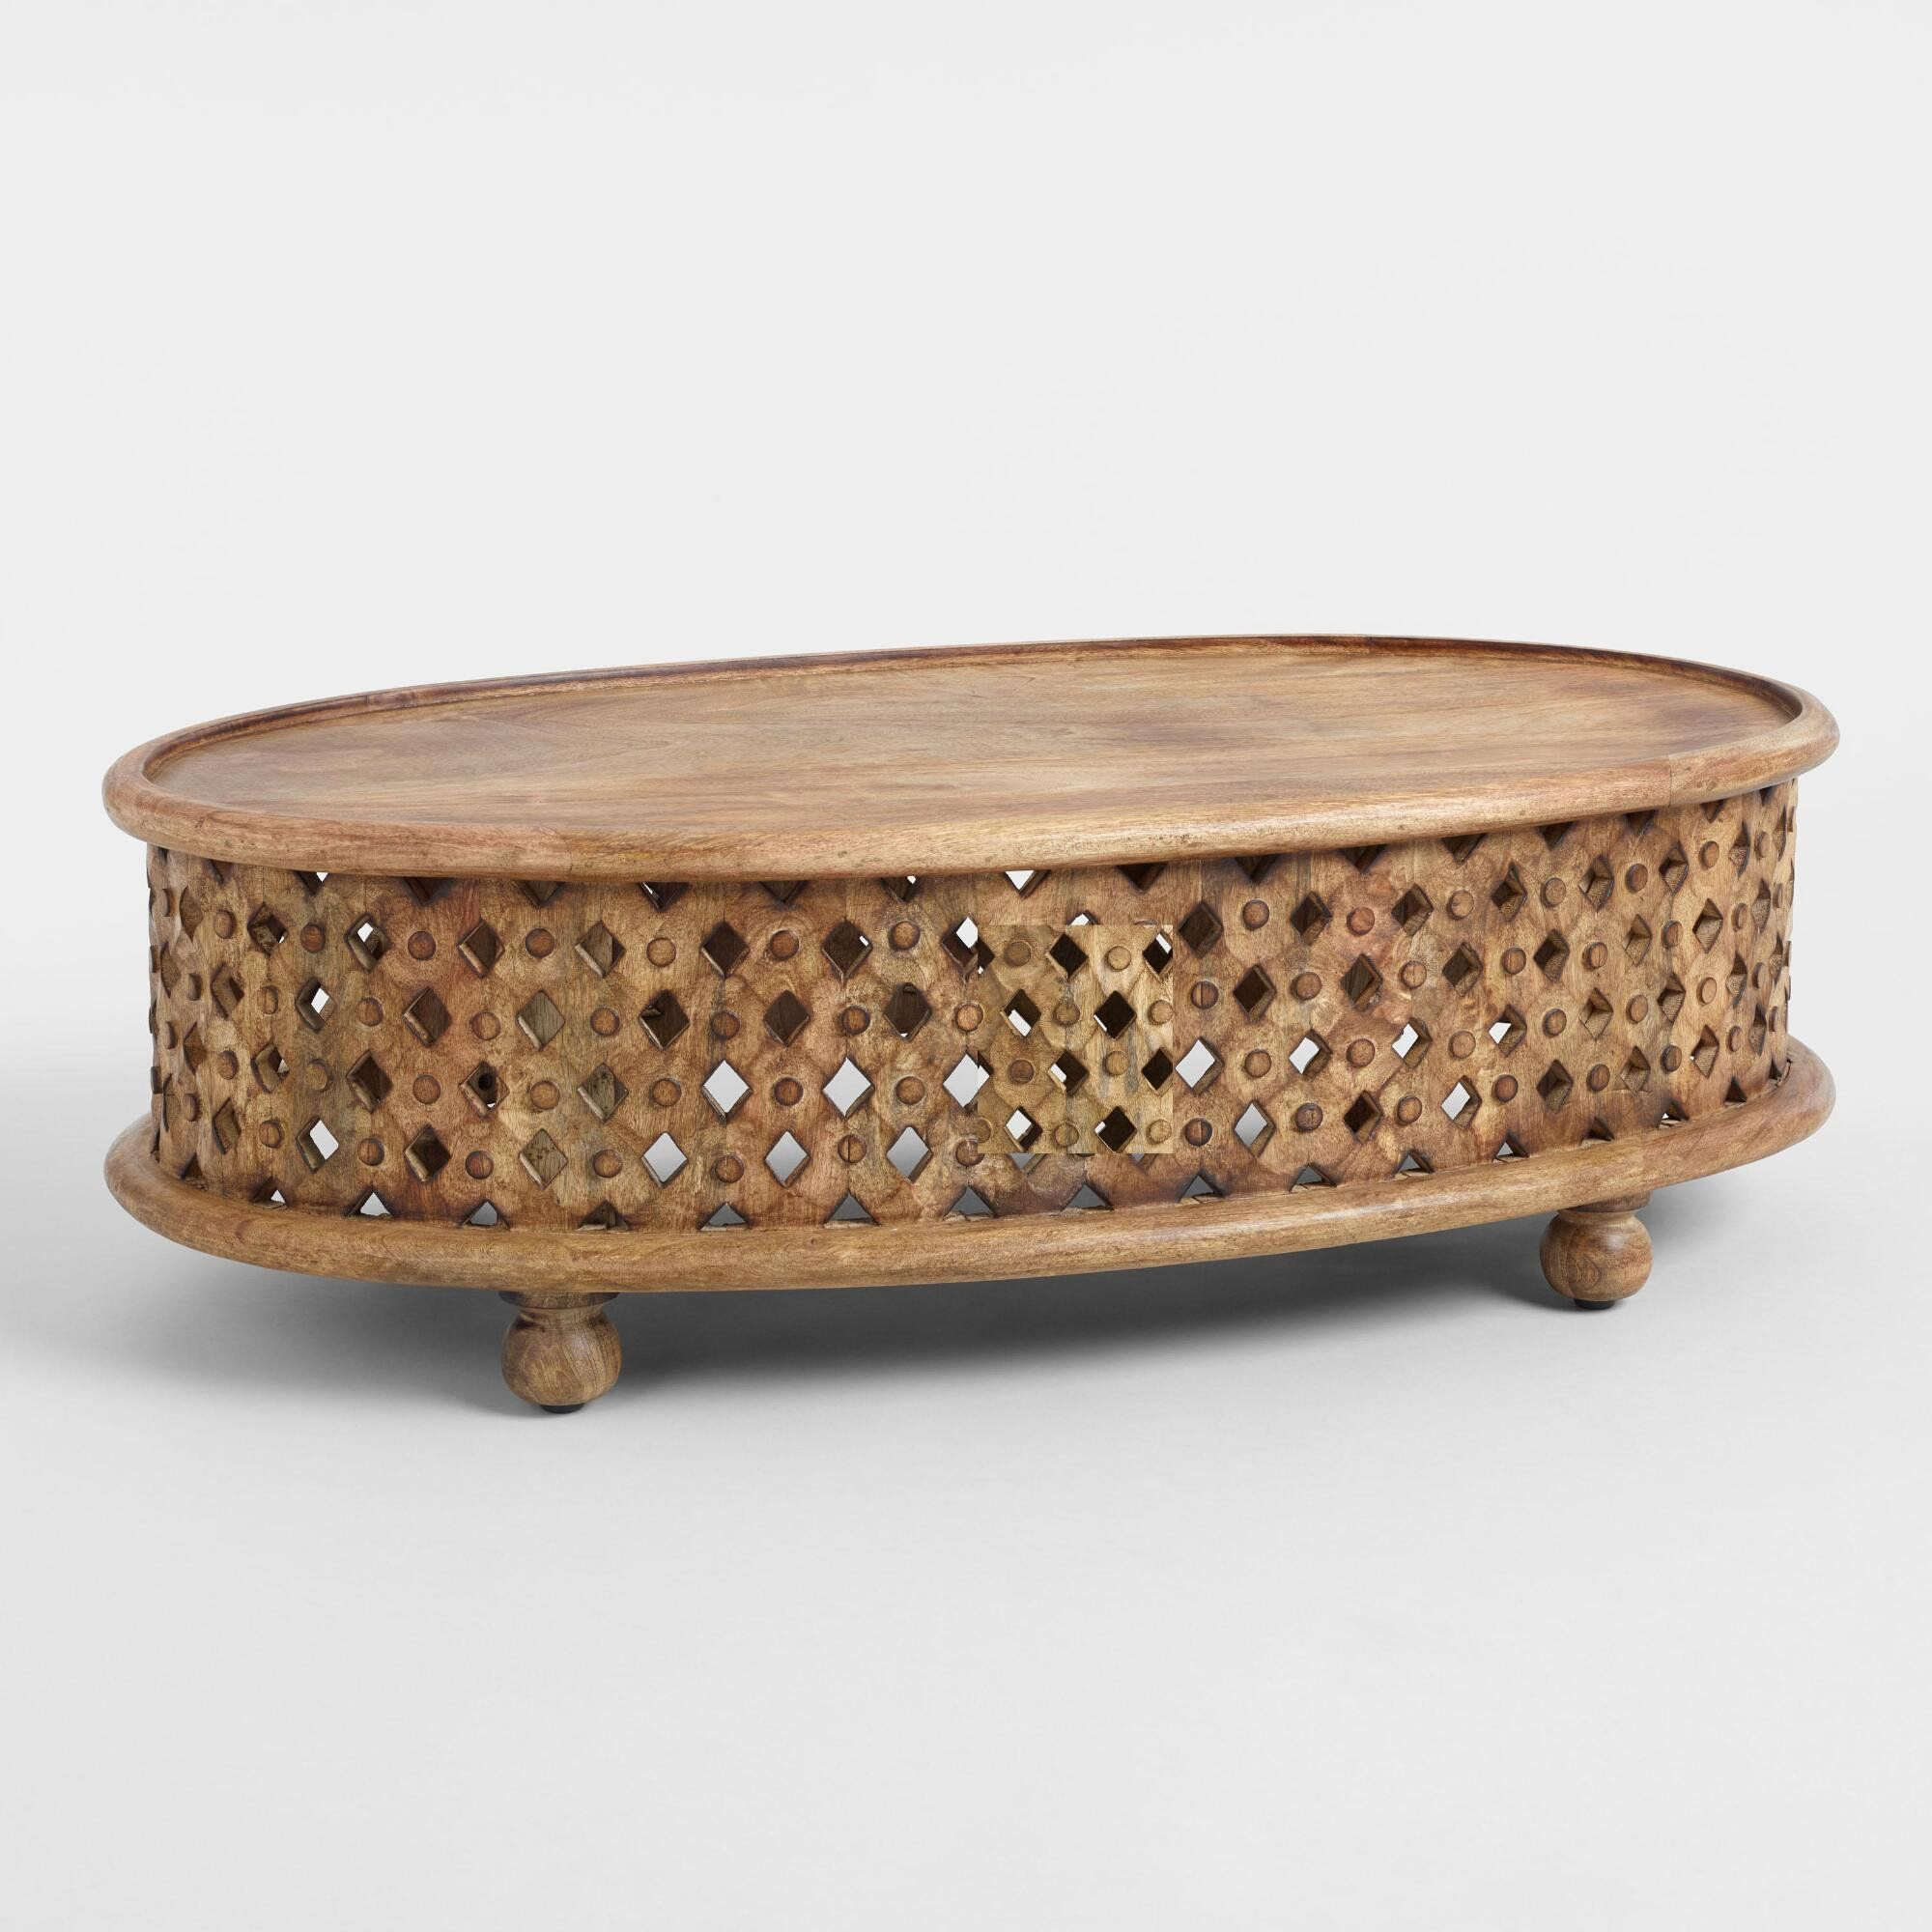 Wooden Indian Carving Coffee Table Home Antique Coffee Table Oval Tribal Carved By Viratrahomedec In 2021 Unique Coffee Table Coffee Table Wood Antique Coffee Tables [ 2000 x 2000 Pixel ]